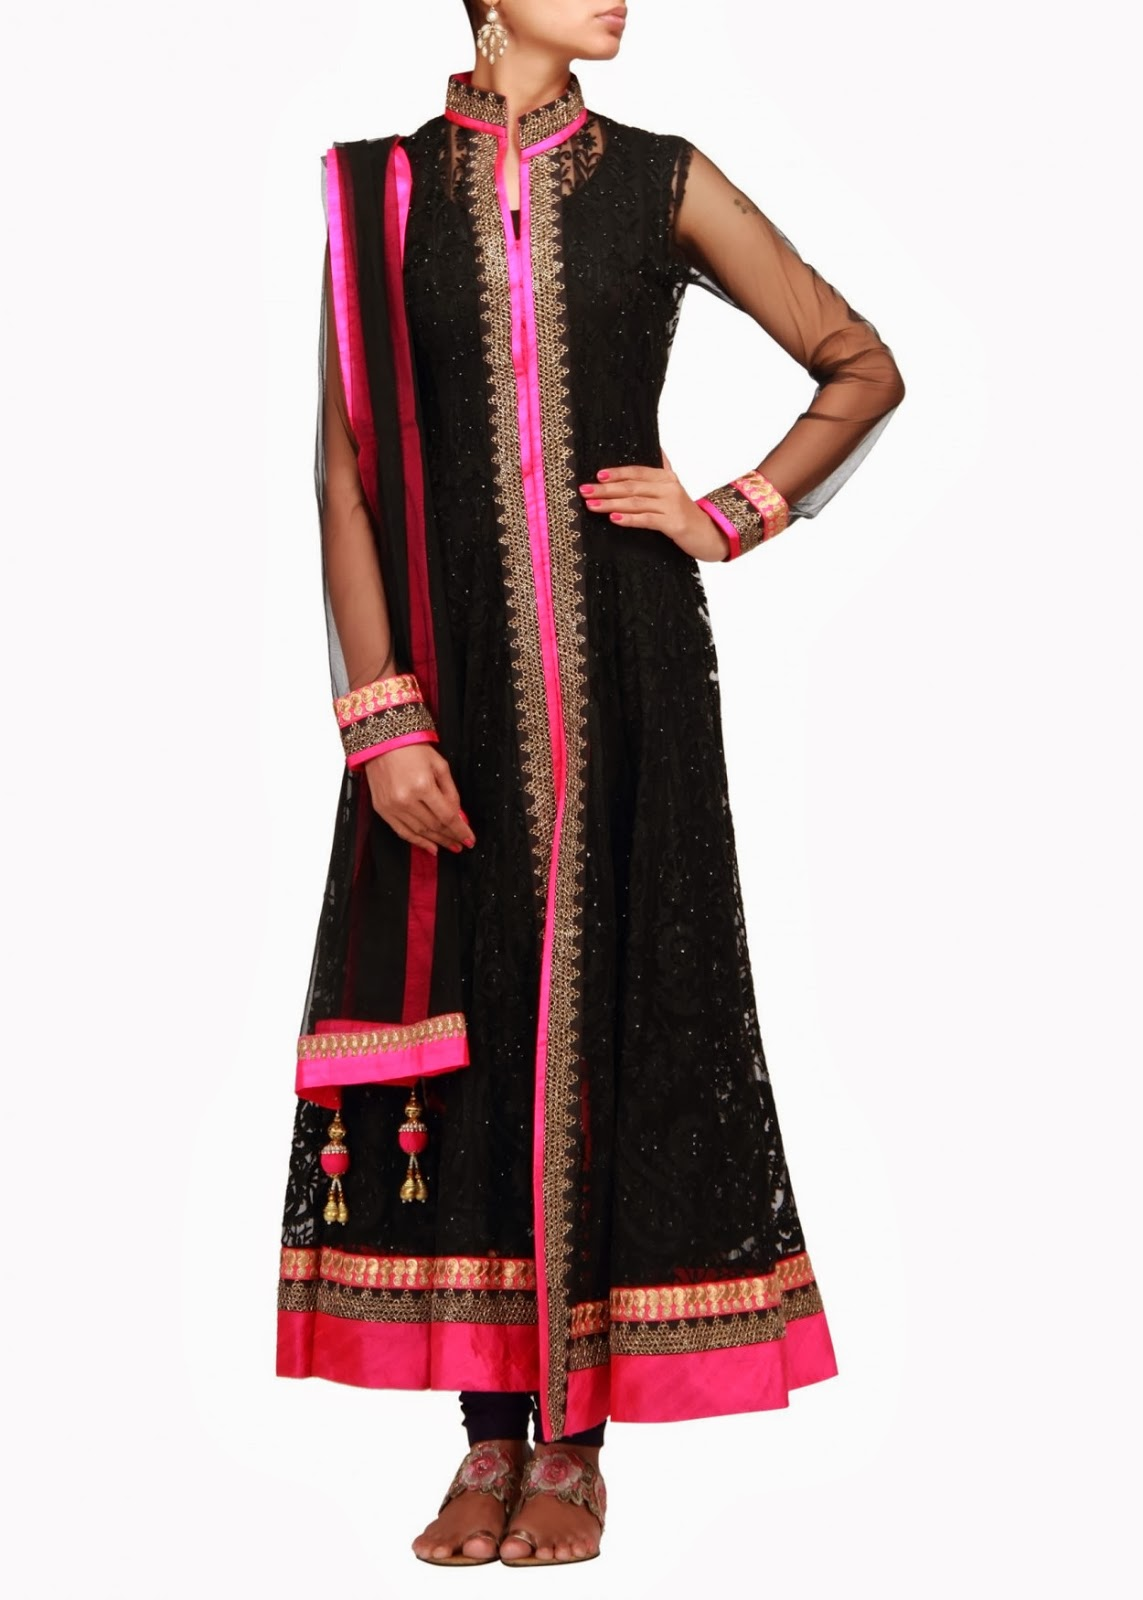 Download this Kalki Designer Anarkali Dresses Online Shopping picture